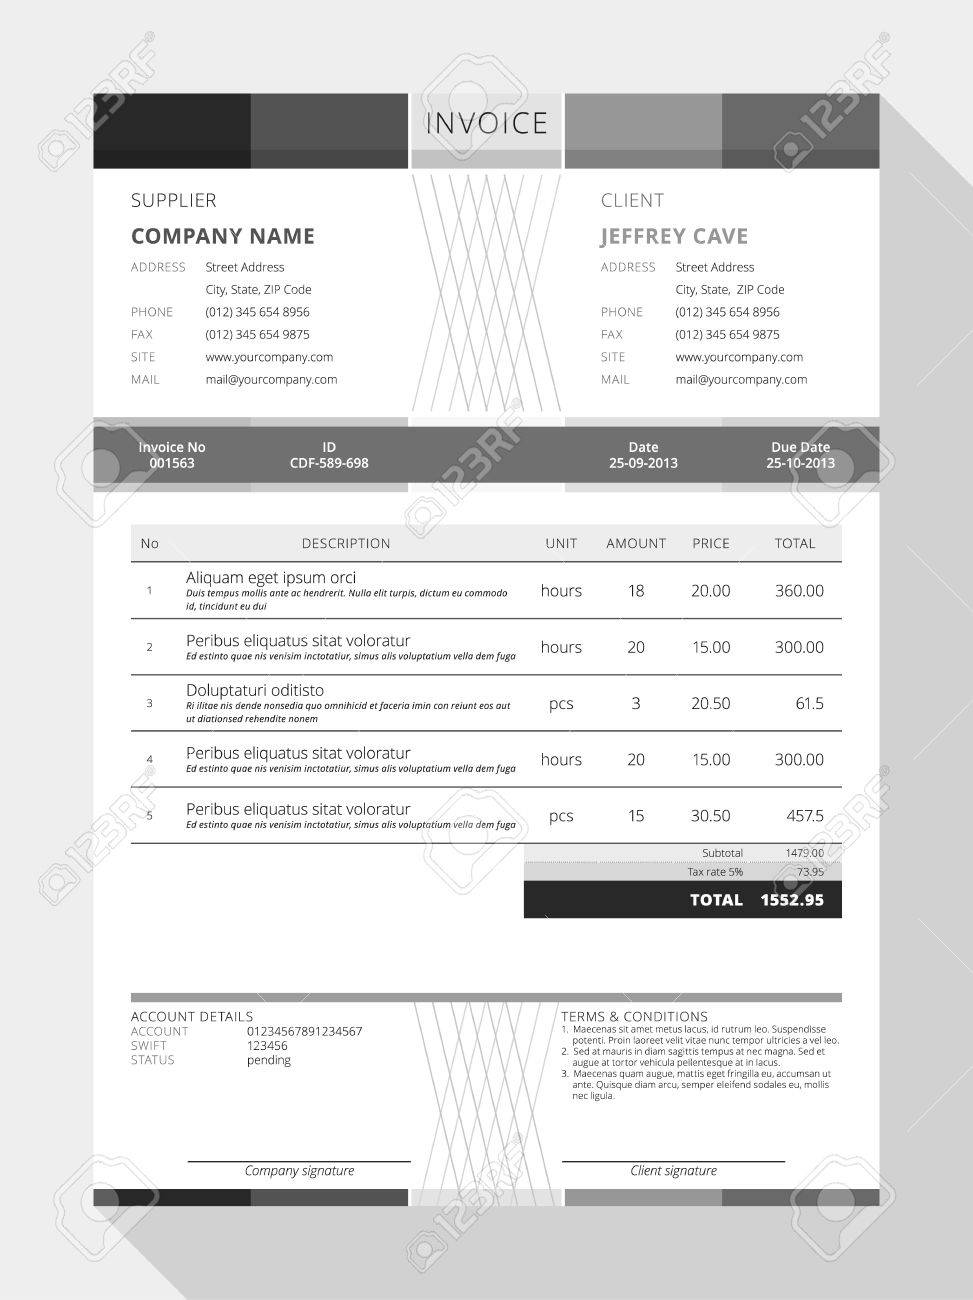 Maidofhonortoastus  Pleasing Design An Invoice  Professional Graphic Design Invoice  With Goodlooking Vector Customizable Invoice Form Template Design Vector   Design An Invoice With Extraordinary Invoice Smaple Also Free Invoicing Service In Addition Invoice App Ipad And Invoice Software Free Uk As Well As Ups International Commercial Invoice Form Additionally Receipted Invoice From Happytomco With Maidofhonortoastus  Goodlooking Design An Invoice  Professional Graphic Design Invoice  With Extraordinary Vector Customizable Invoice Form Template Design Vector   Design An Invoice And Pleasing Invoice Smaple Also Free Invoicing Service In Addition Invoice App Ipad From Happytomco